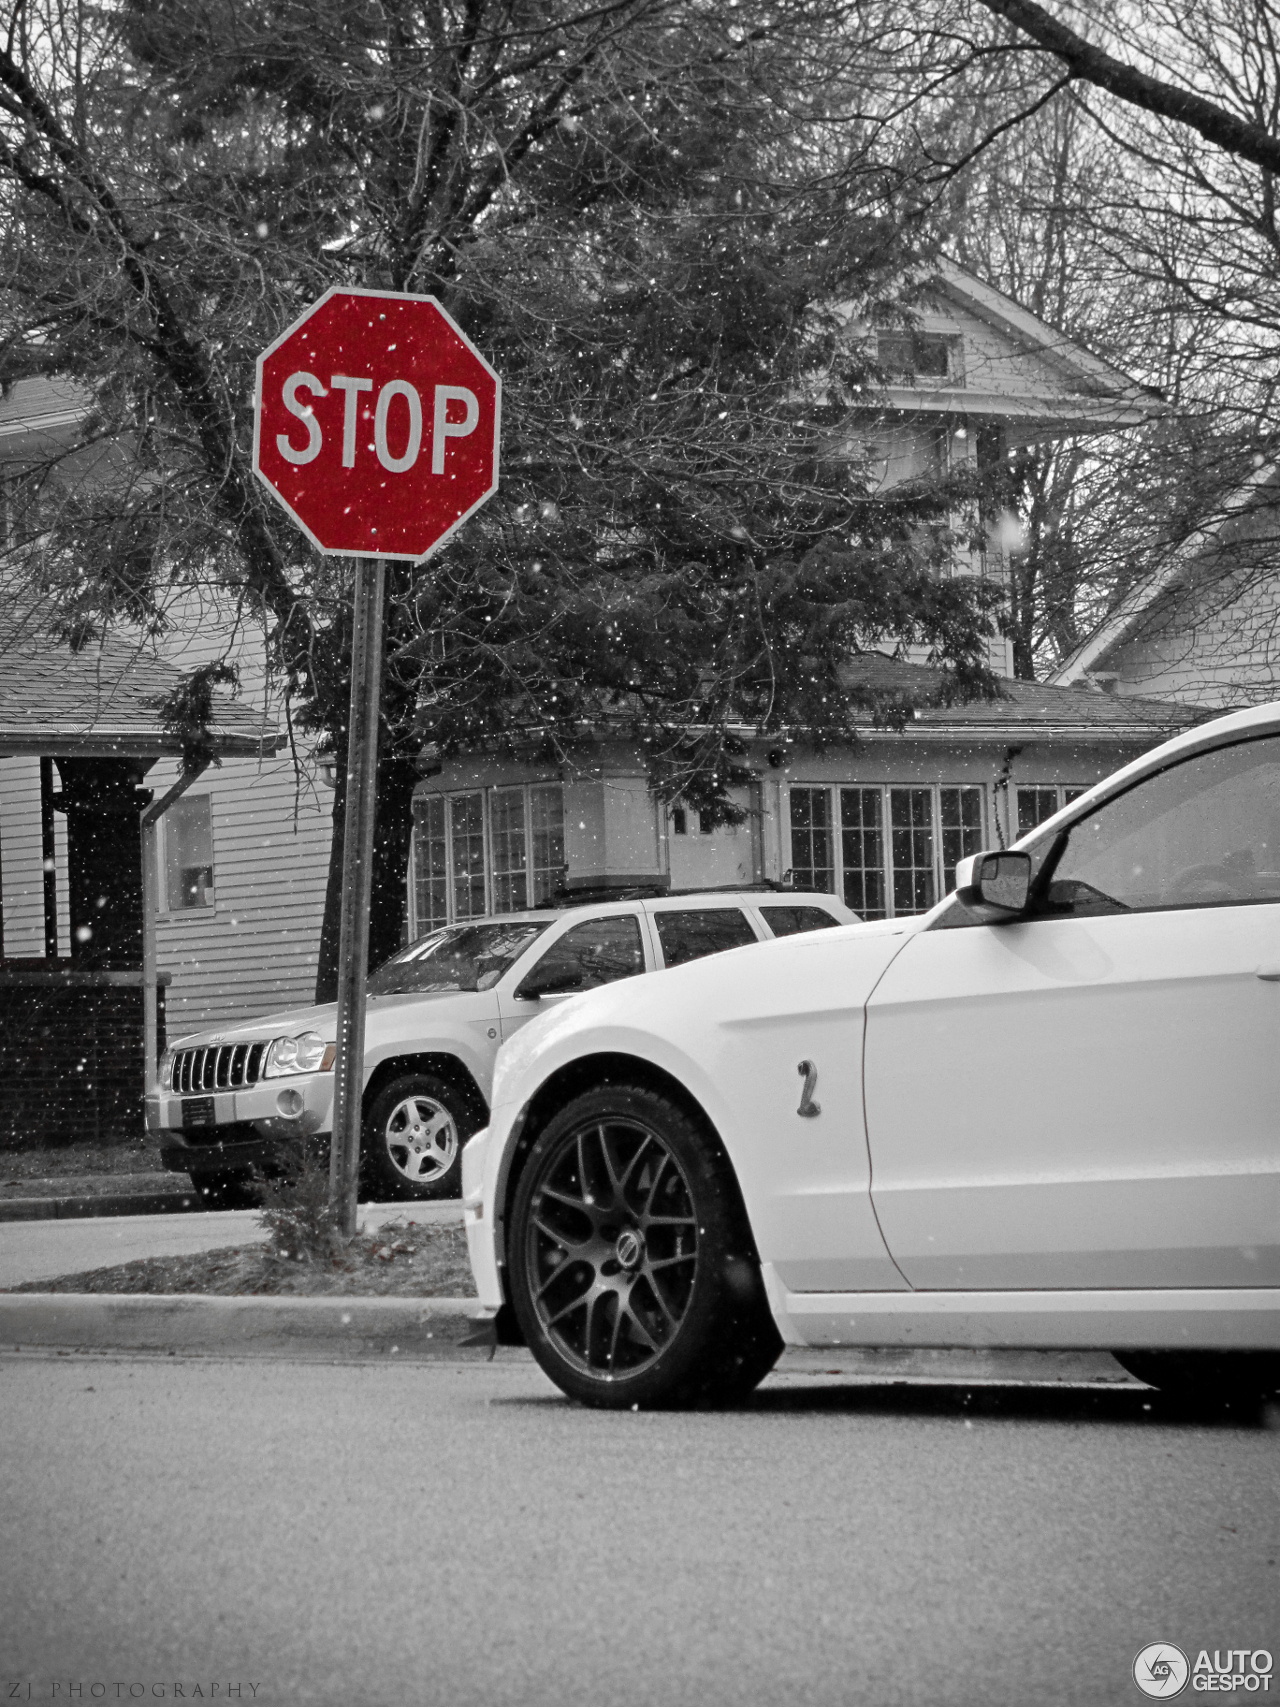 Ford Mustang 2013 Gt500 White Mustang Shelby Gt500 2013